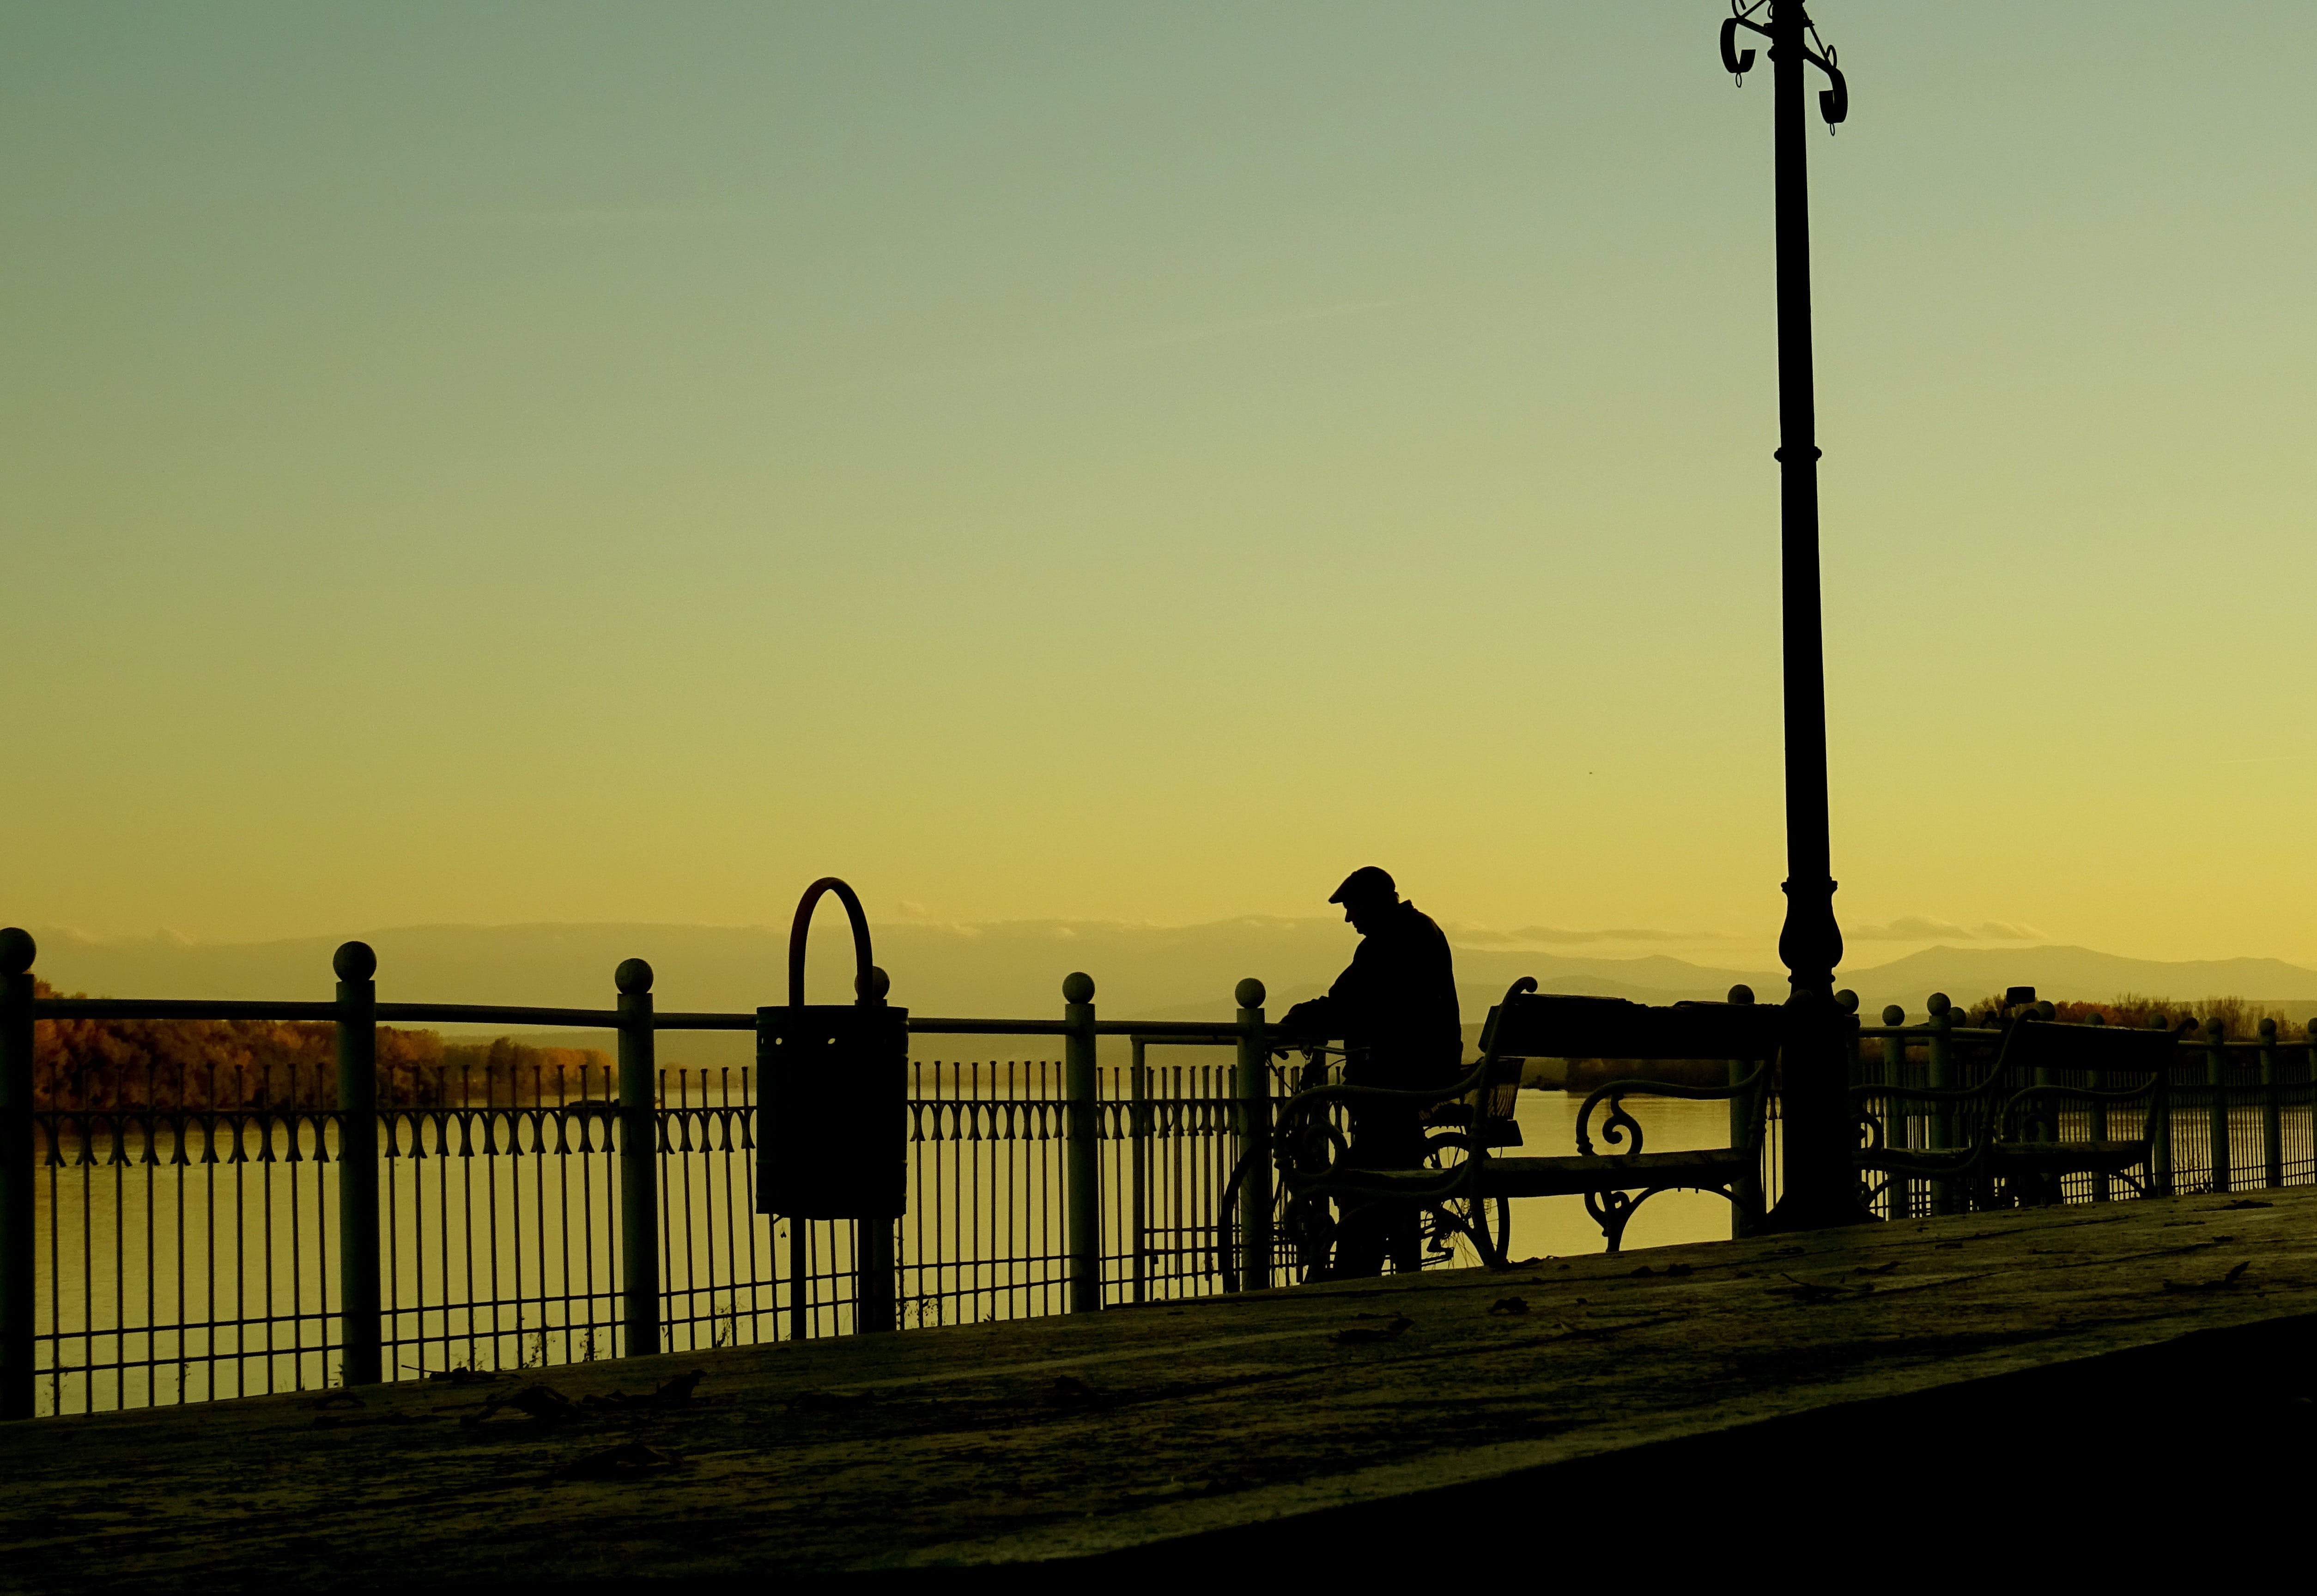 Silhouette Man on Street in City at Sunset